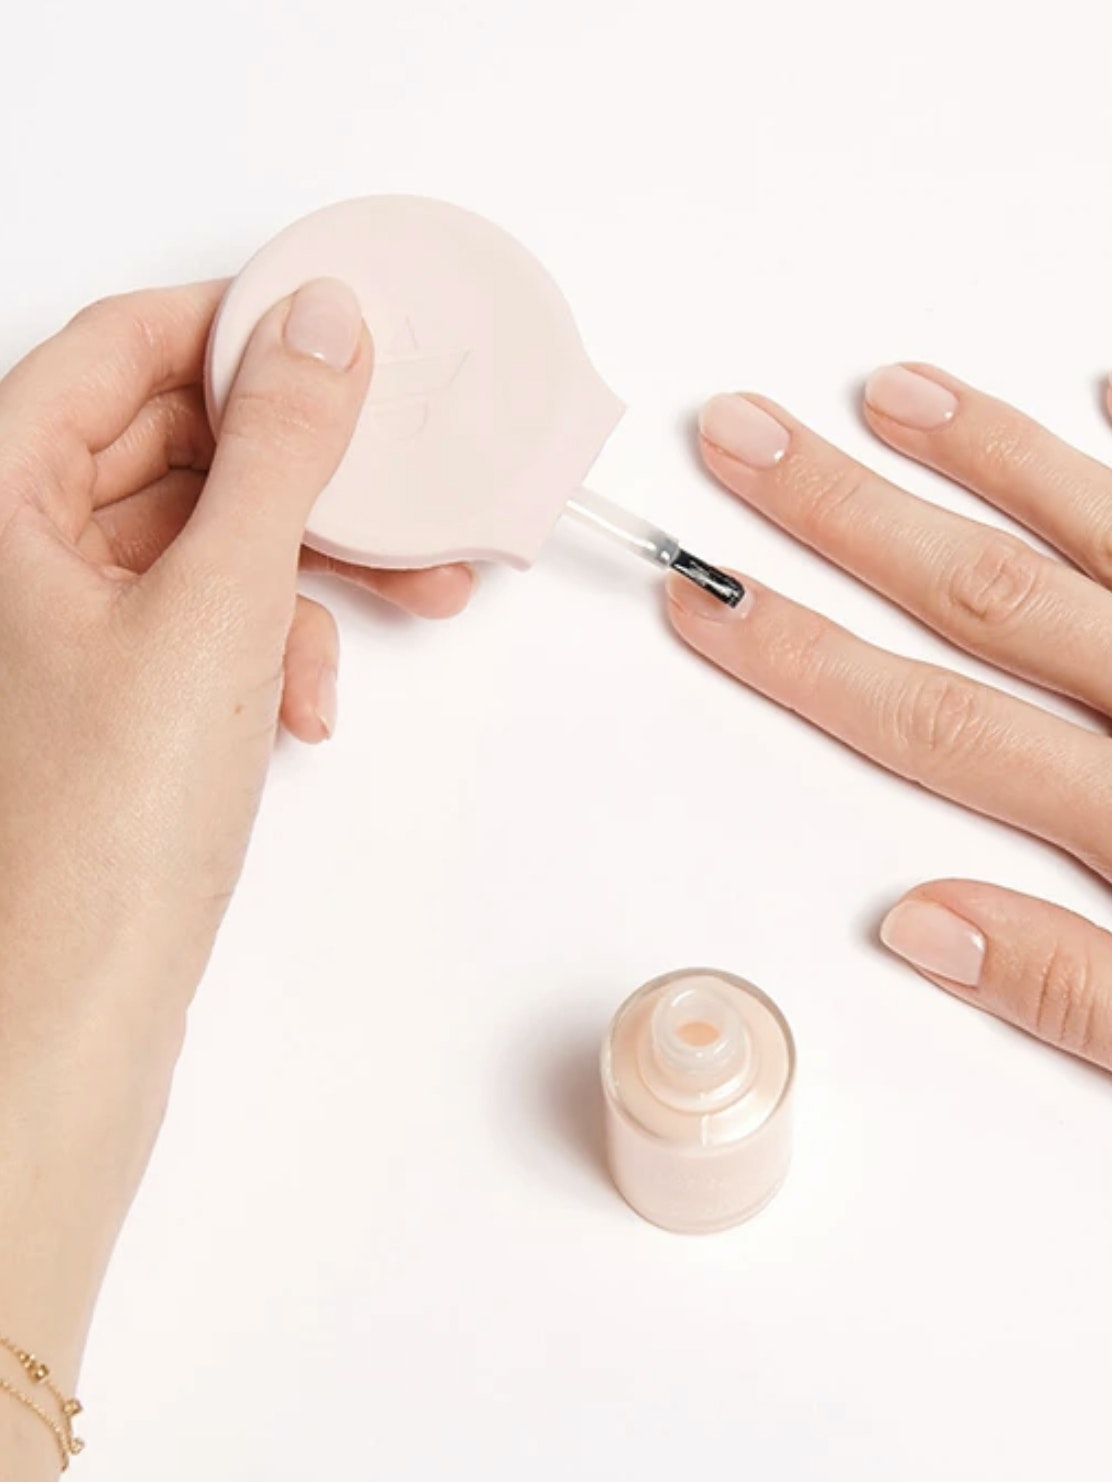 gel nails at home manicure Spotlyte